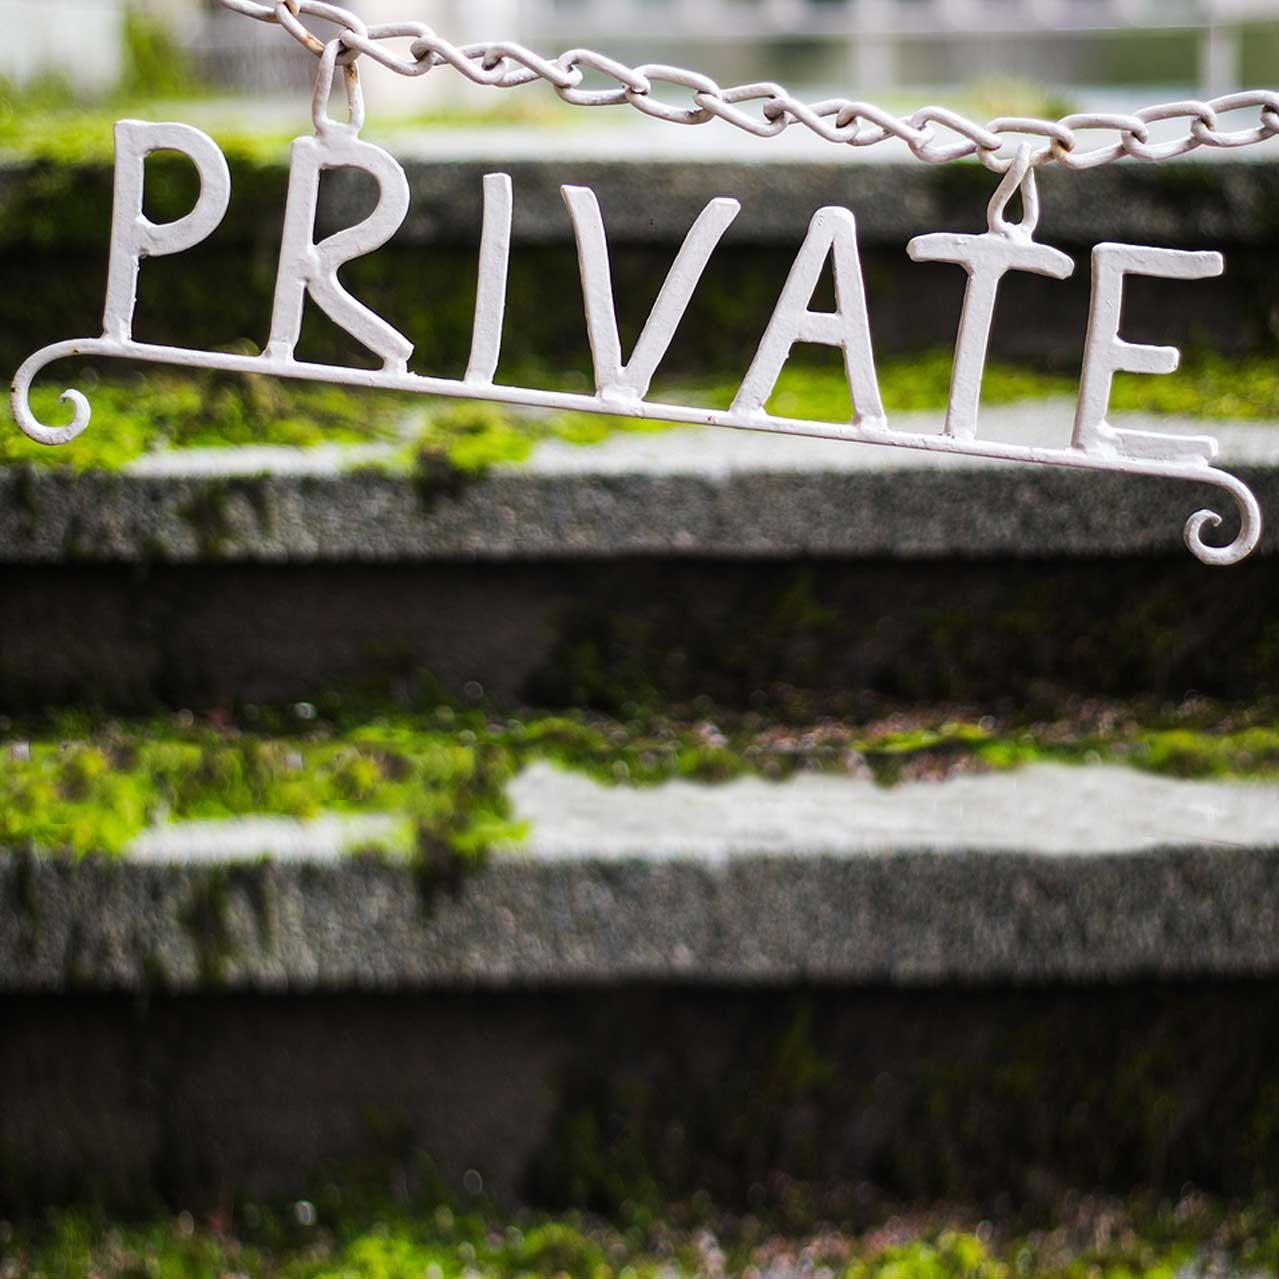 Photograph of a private sign.